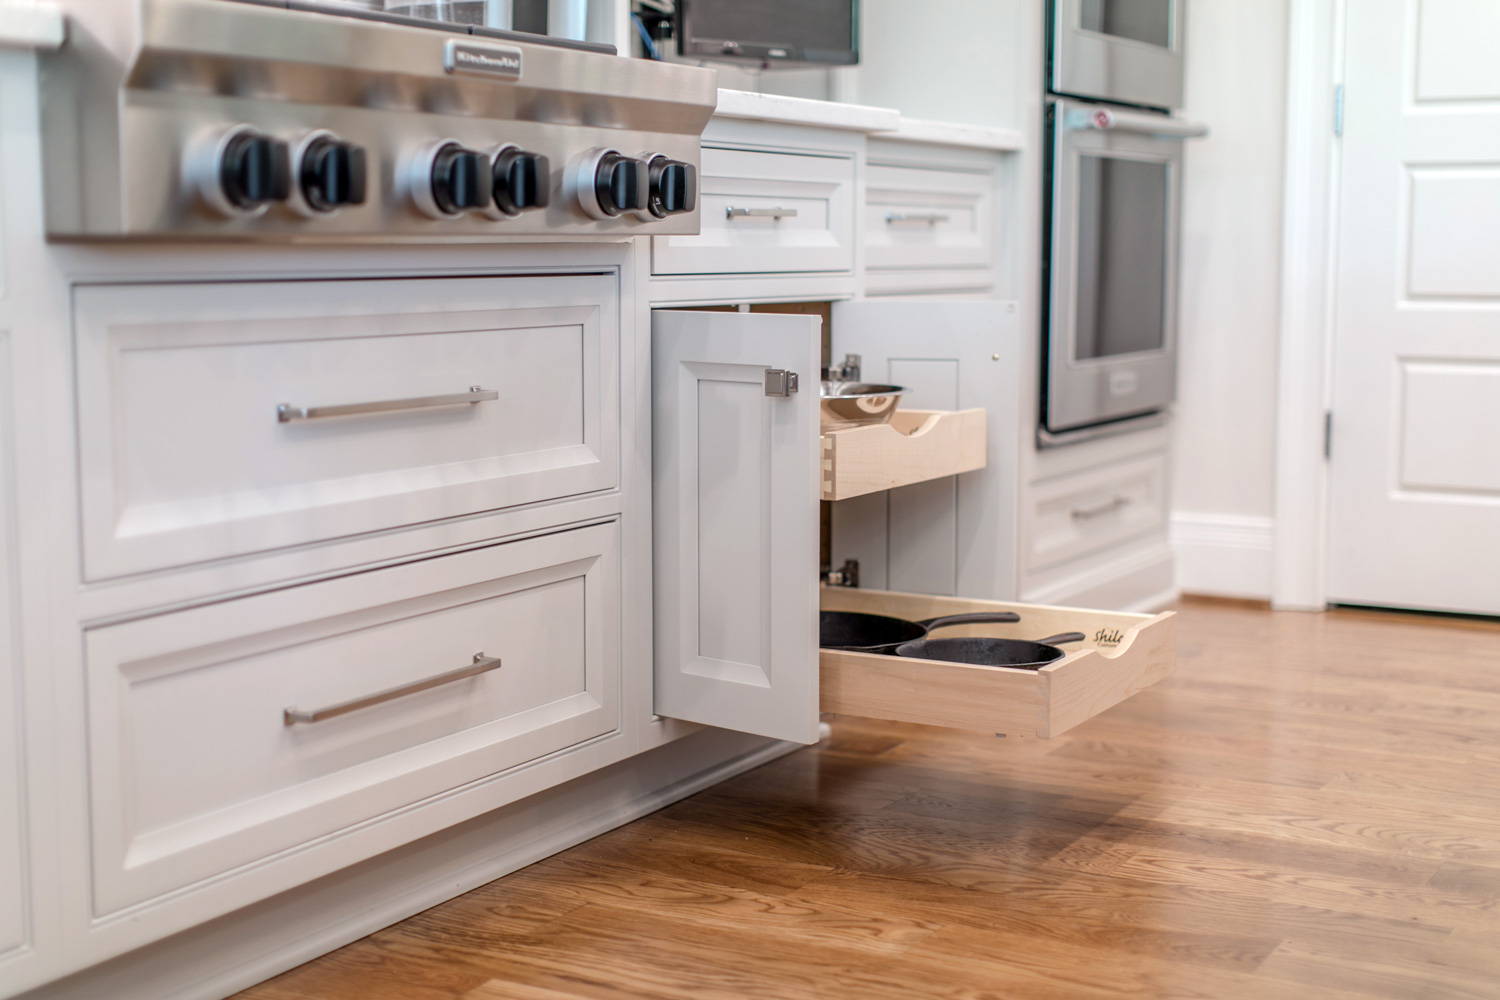 Kitchen Cabinet Construction | Particle Board, MDF, or ...